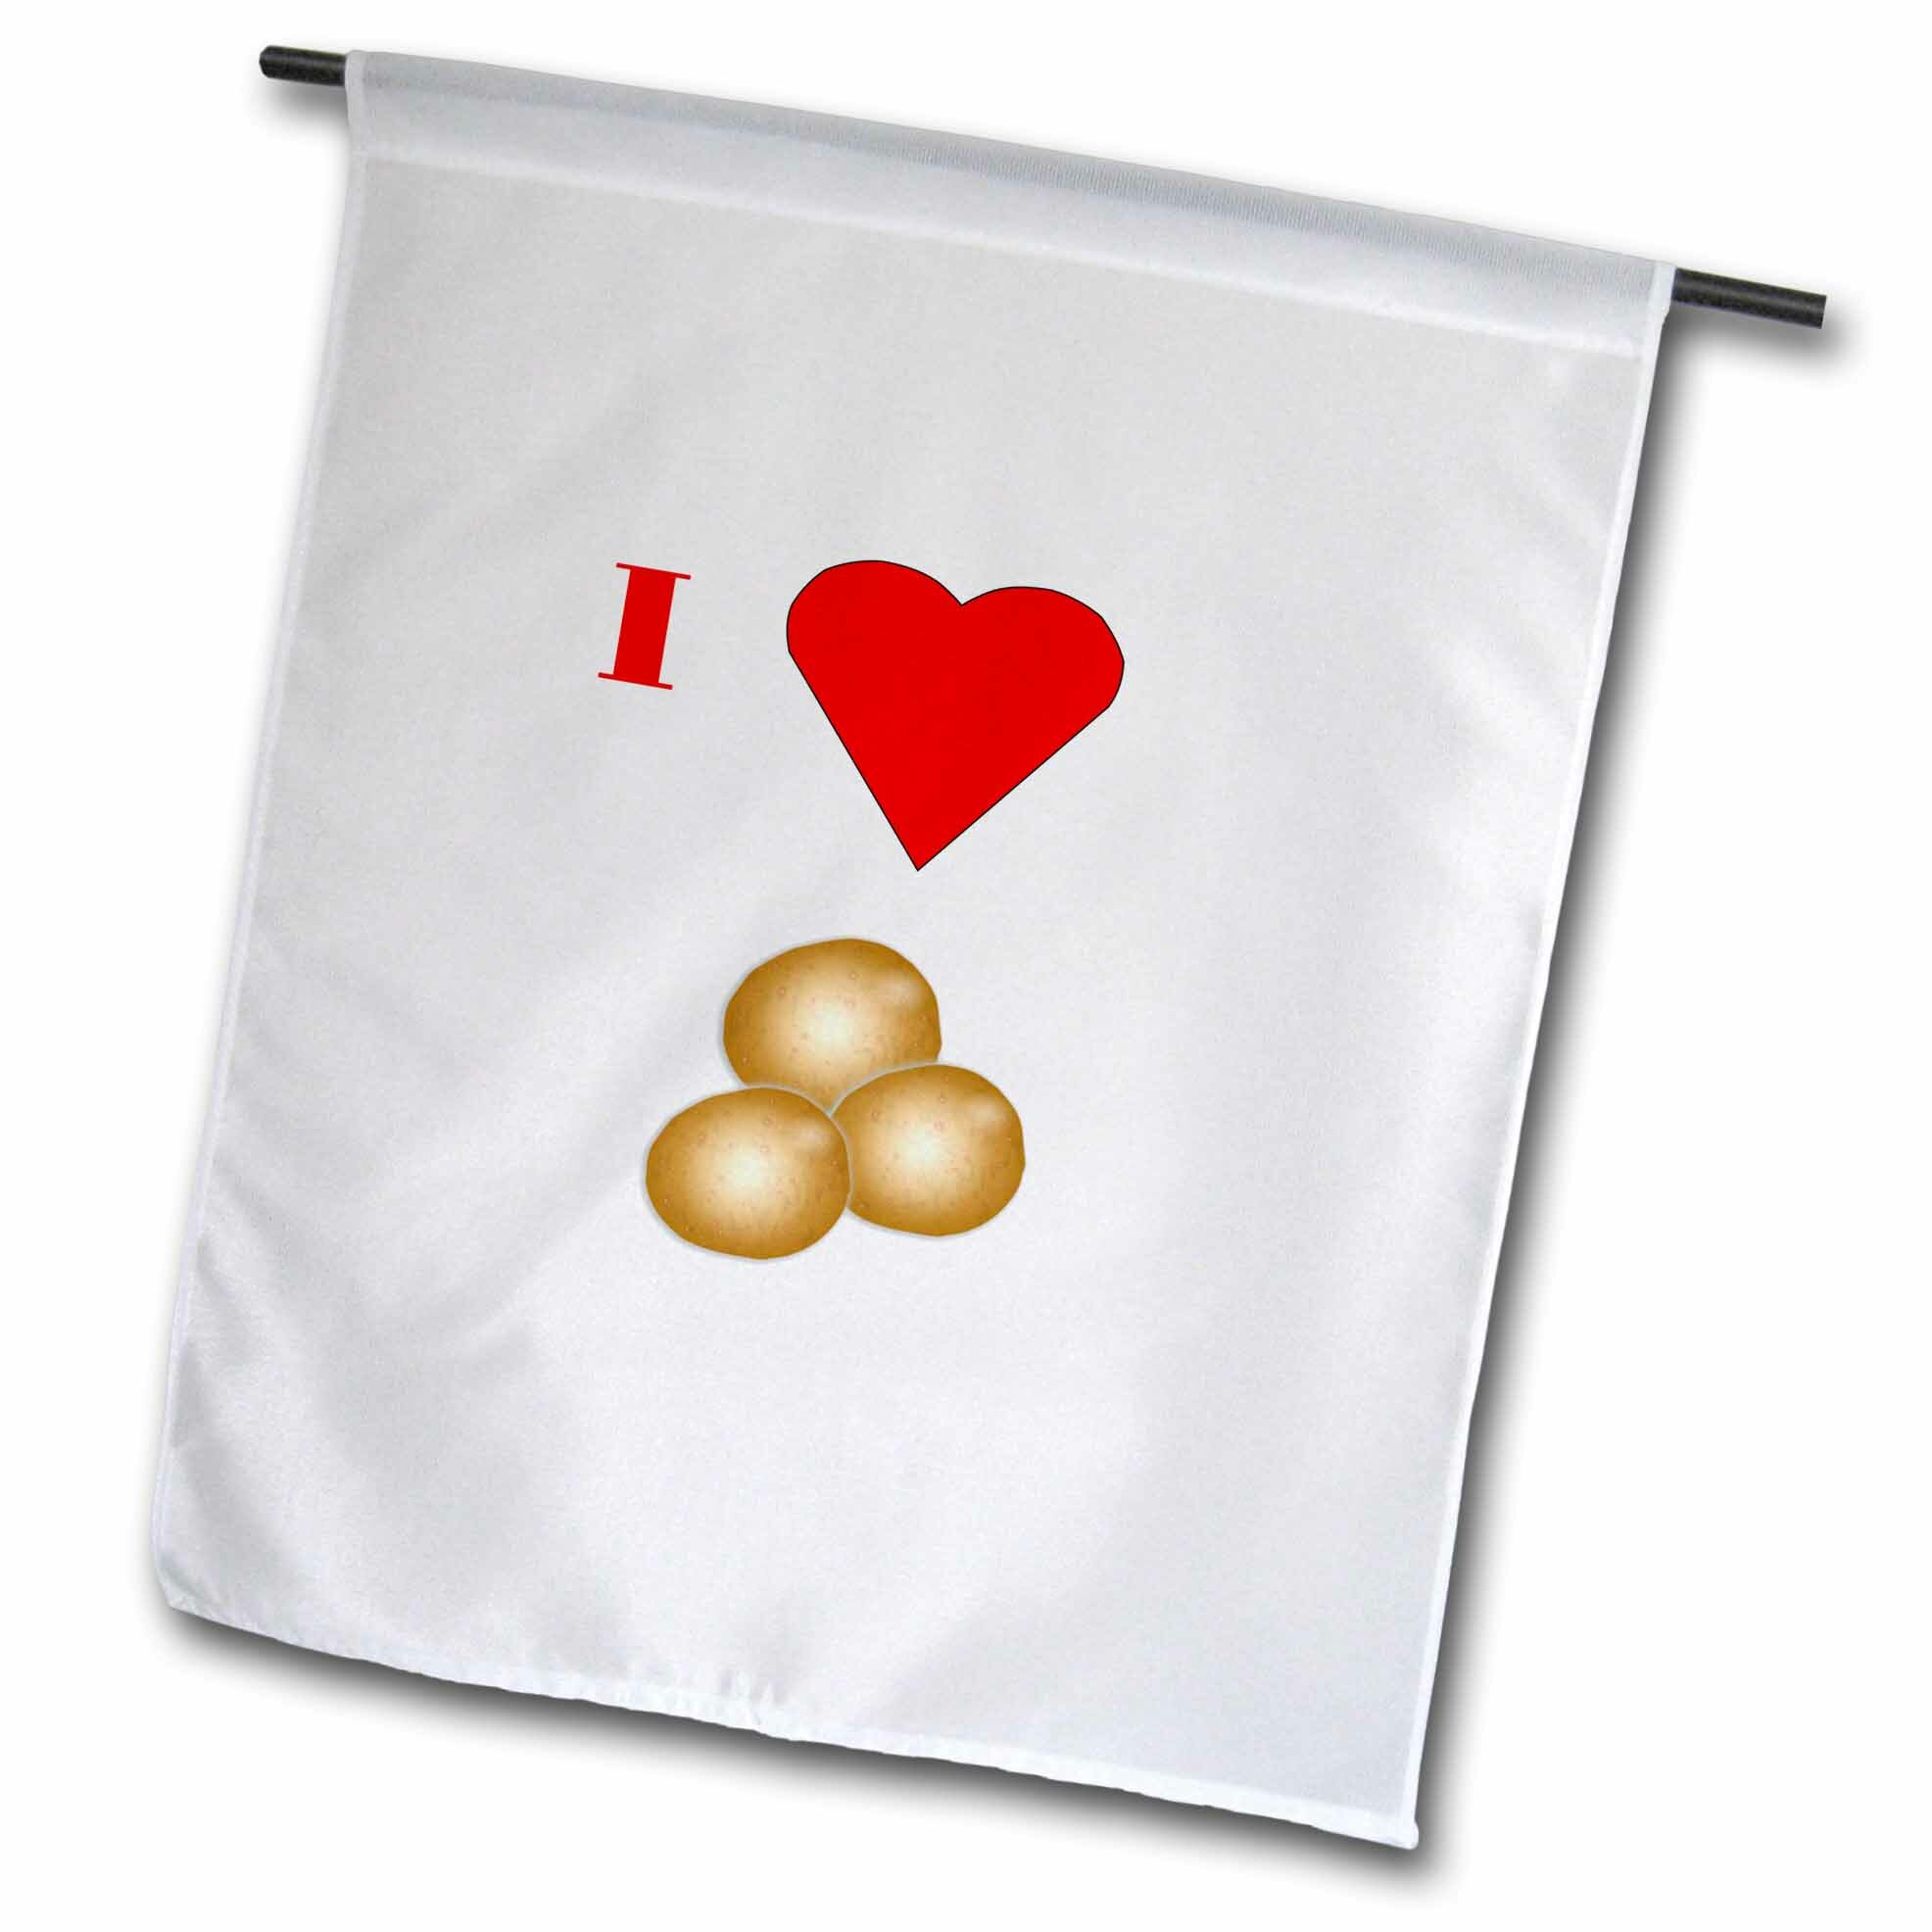 3drose Image Of Cartoon I Love Potatoes With Heart Polyester 18 X 12 In House Flag Wayfair Ca